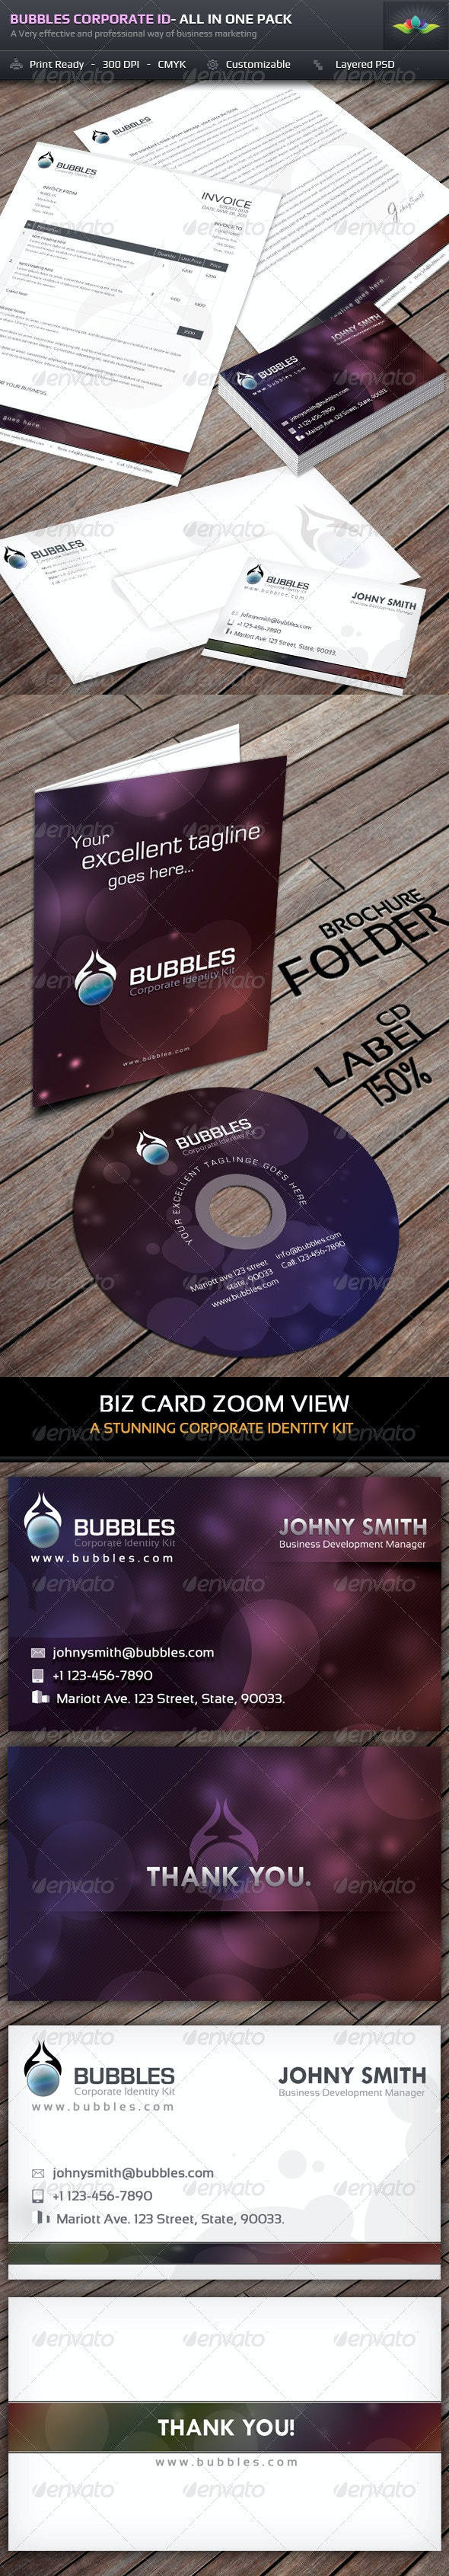 Bubbles Corporate Identity - All In One Pack - Stationery Print Templates